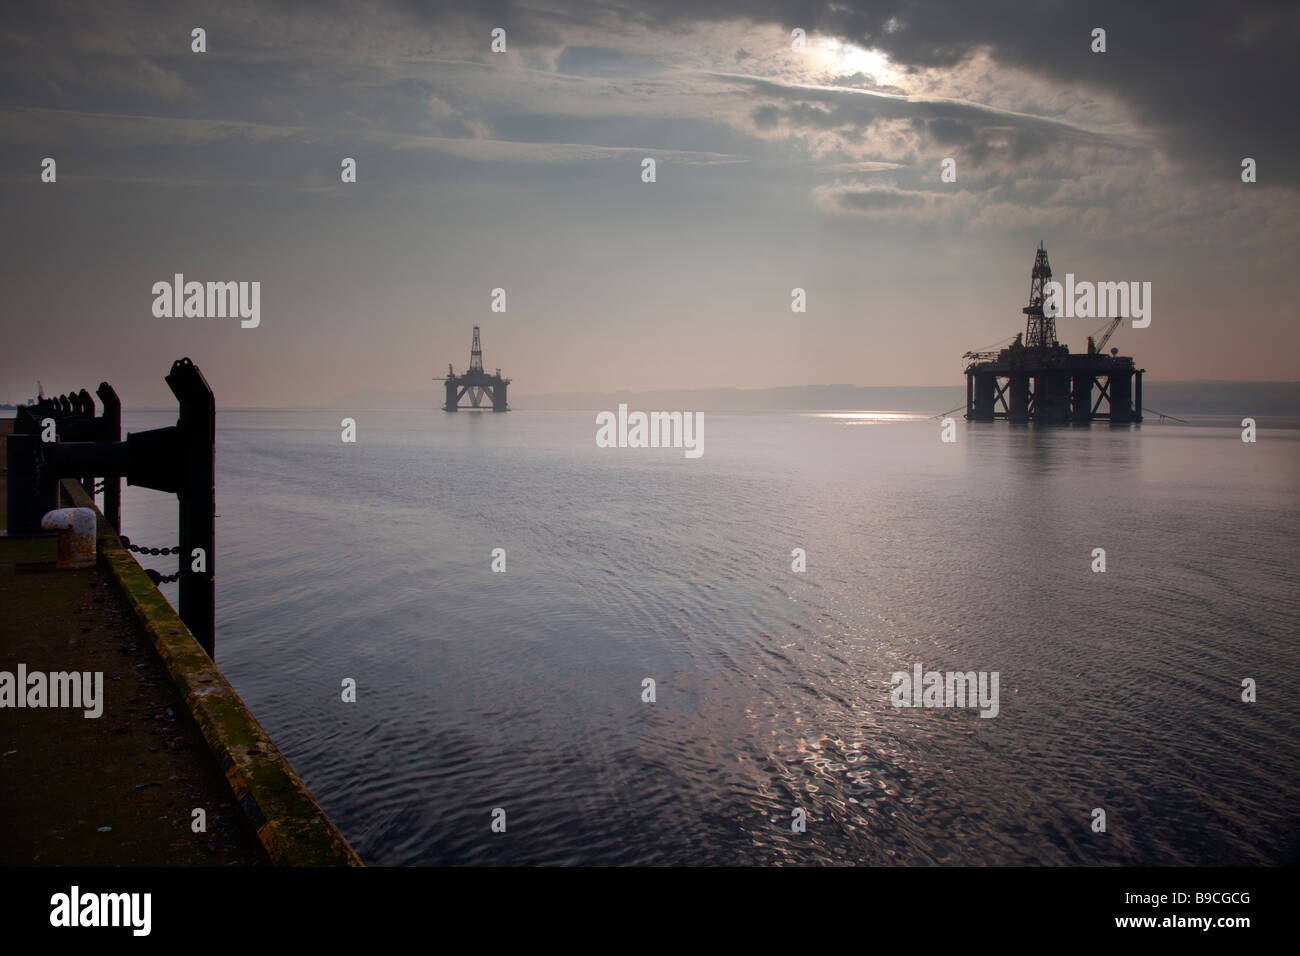 Two north-sea Scottish Oil Rigs moored at the Port of Invergordon, Cromarty Firth in Northern Scotland, UK - Stock Image